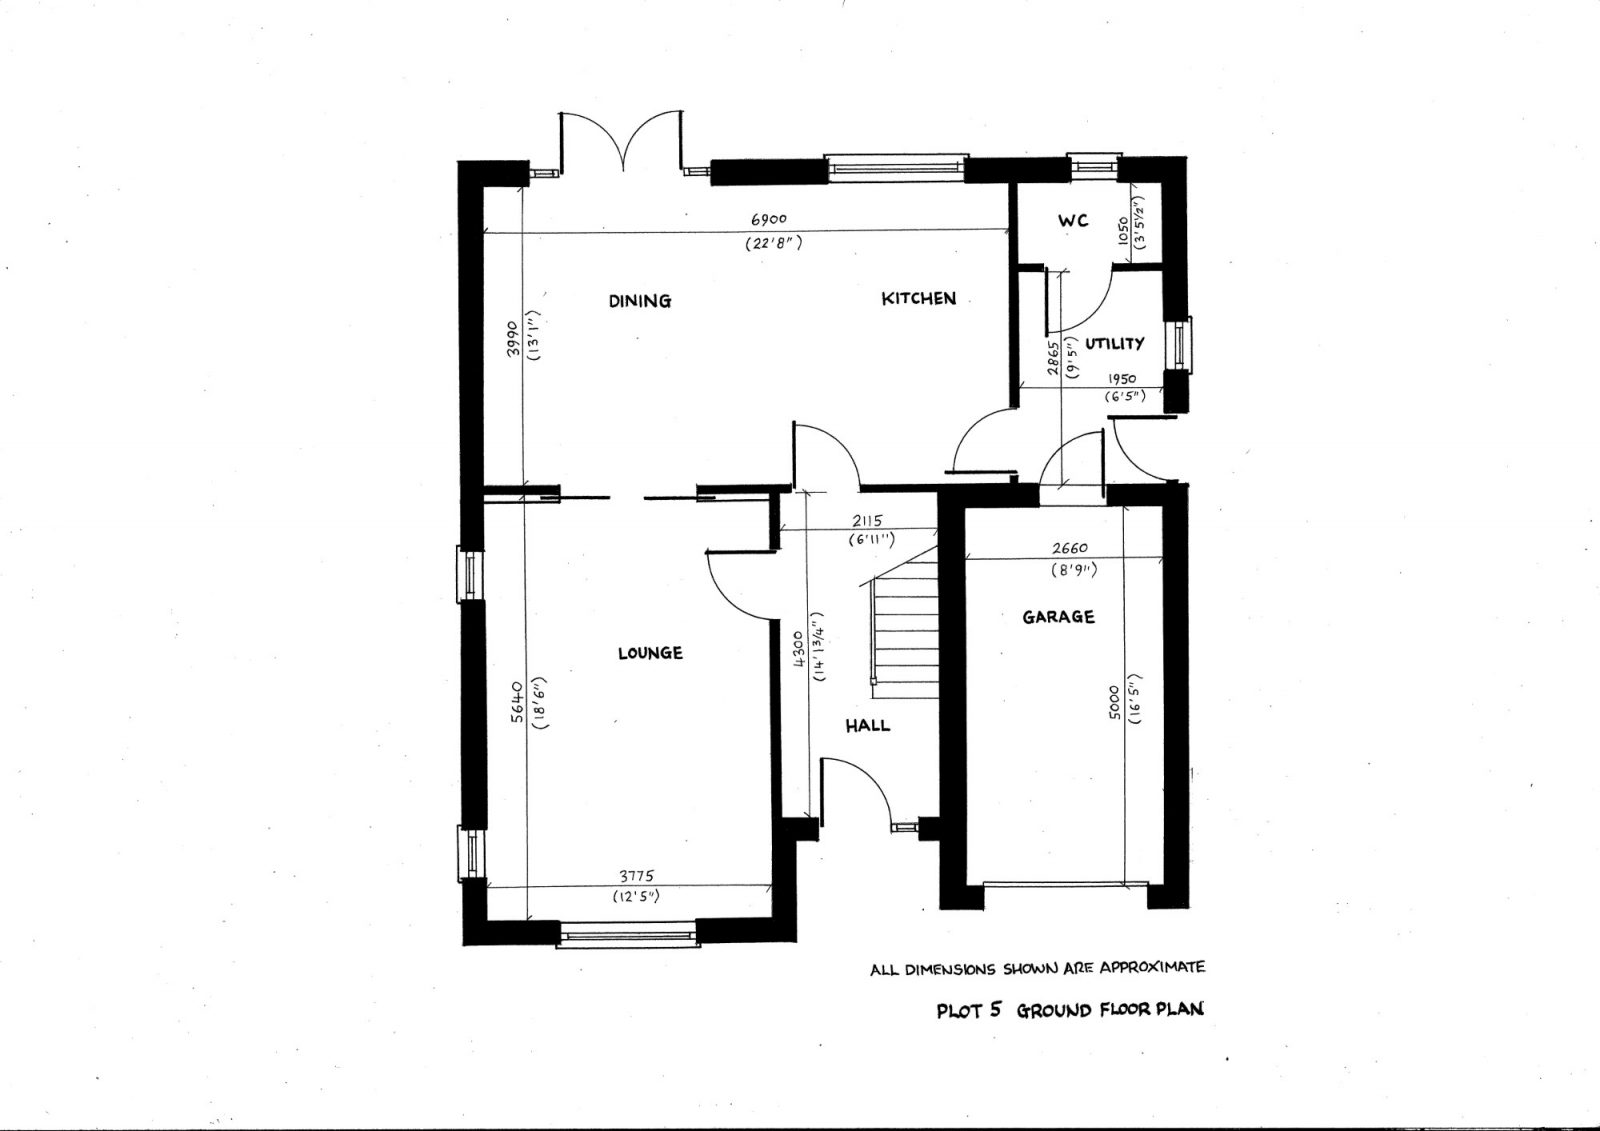 plot 5 ground floor plan